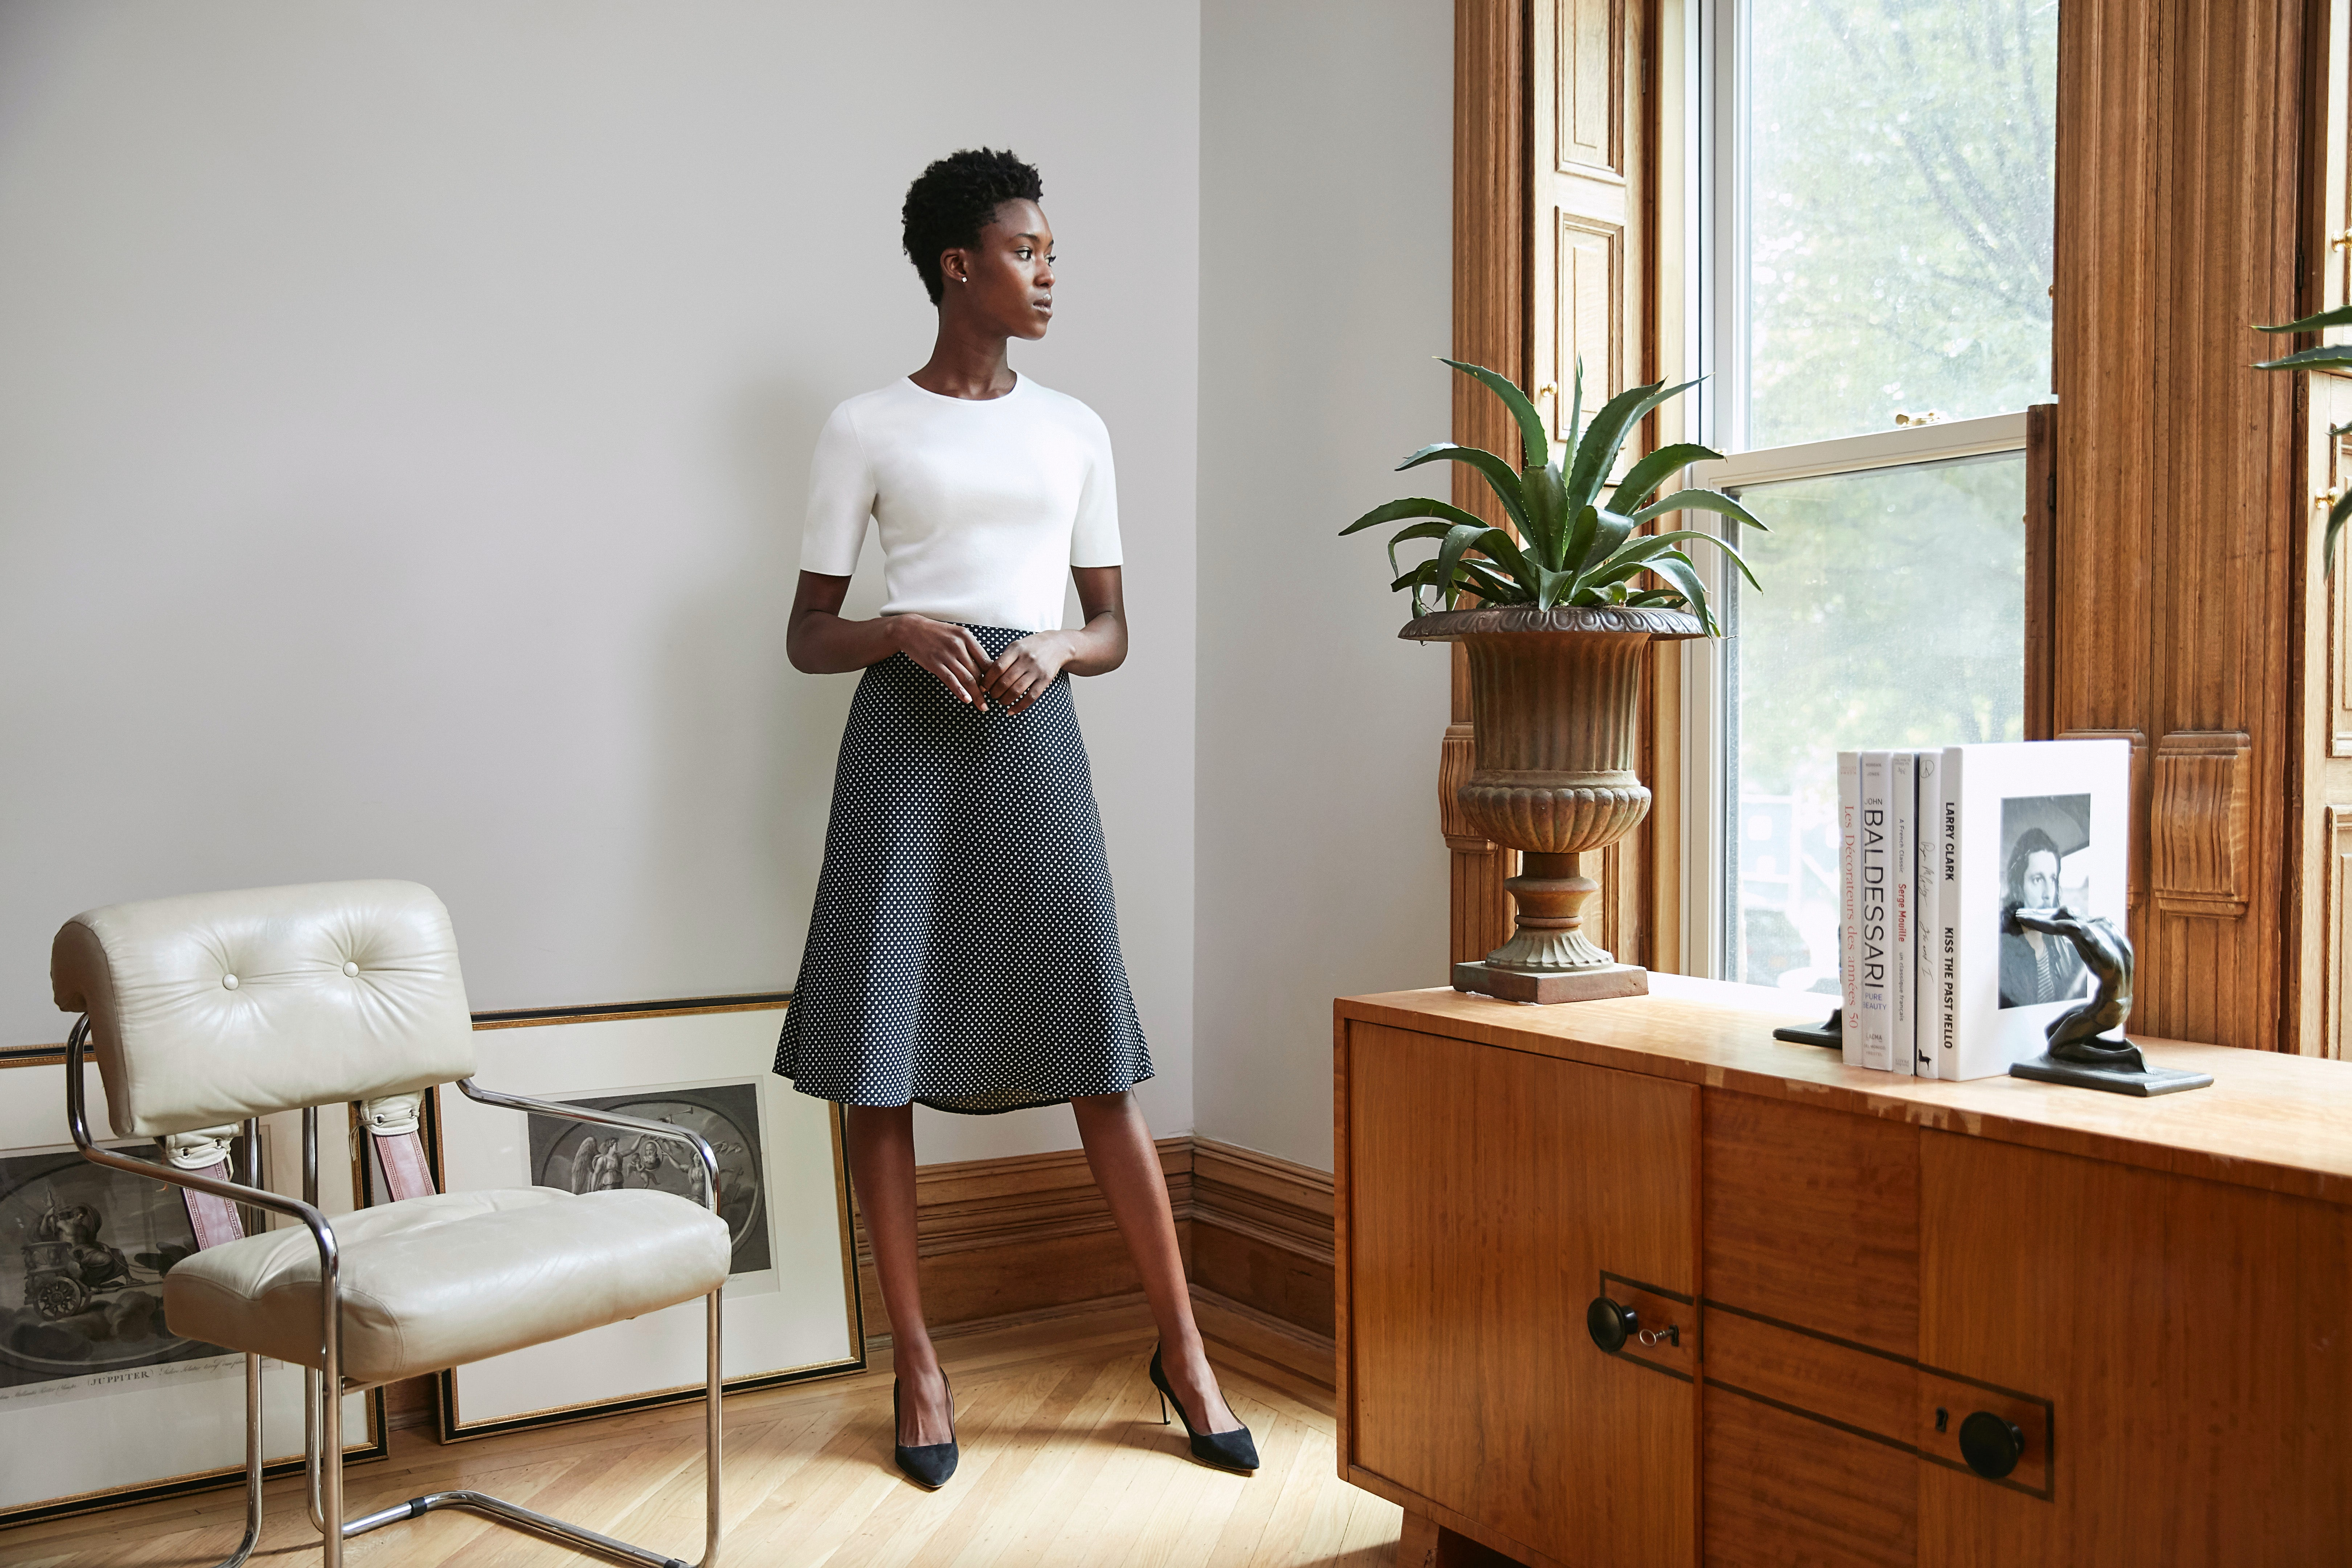 Women Need Work Clothes These Brands Want To Give Them More Options Intelligence Careers Bof